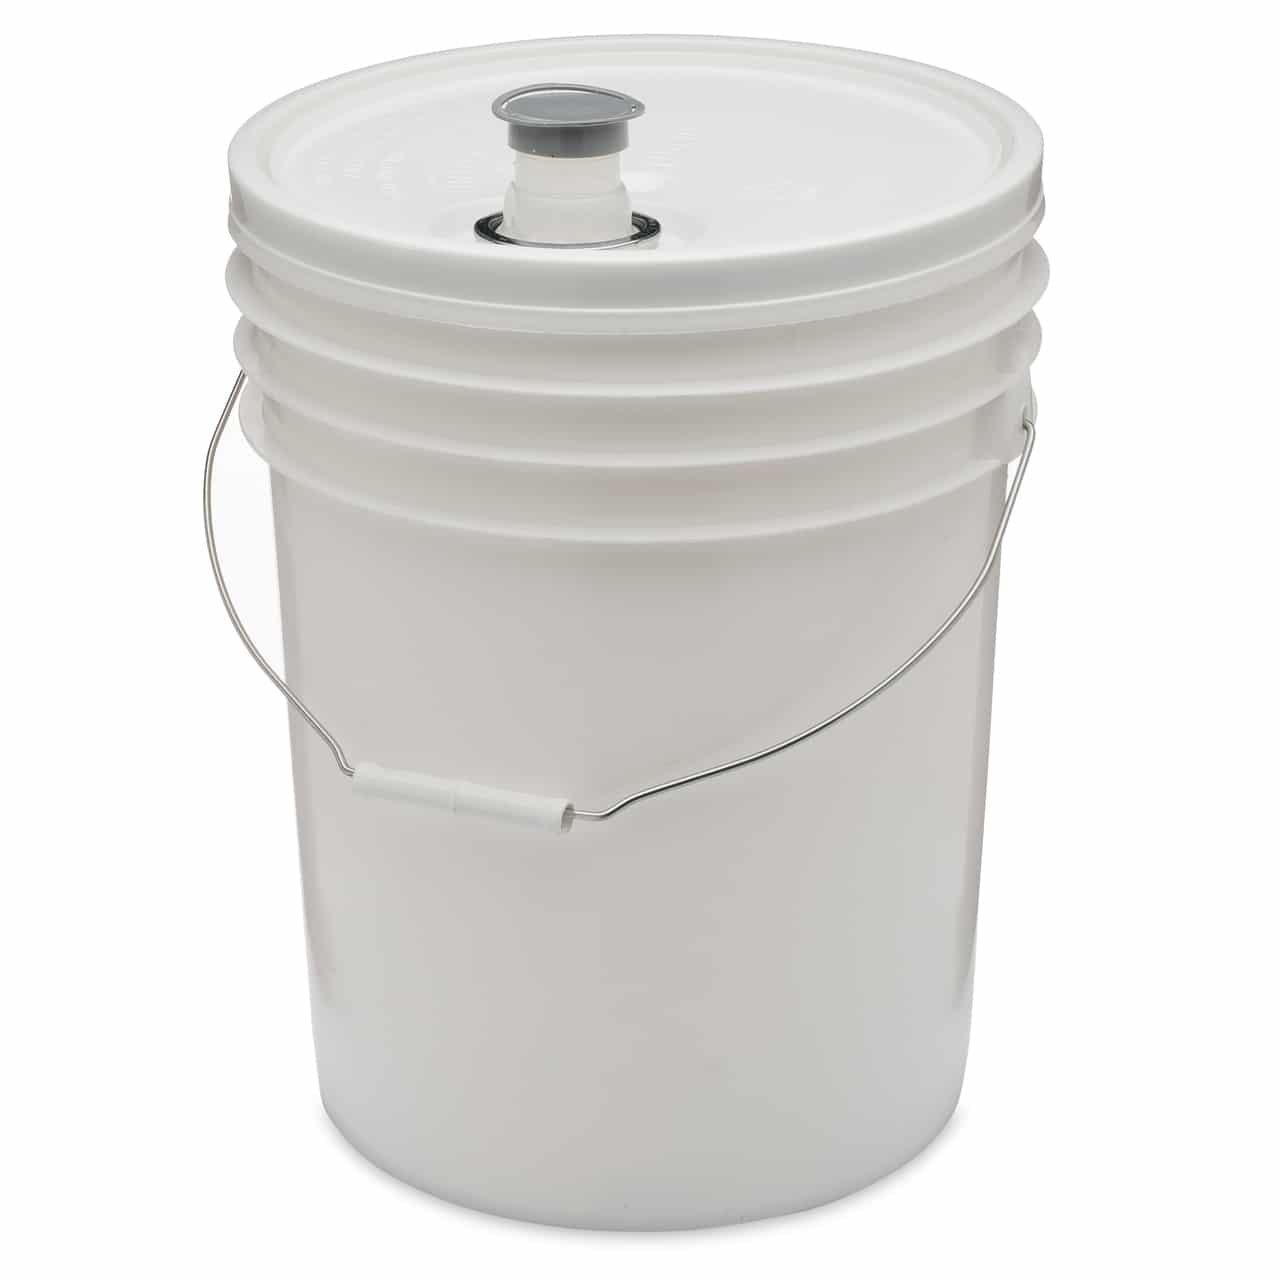 Plastic Pail 5 gallon (20 L) with spout